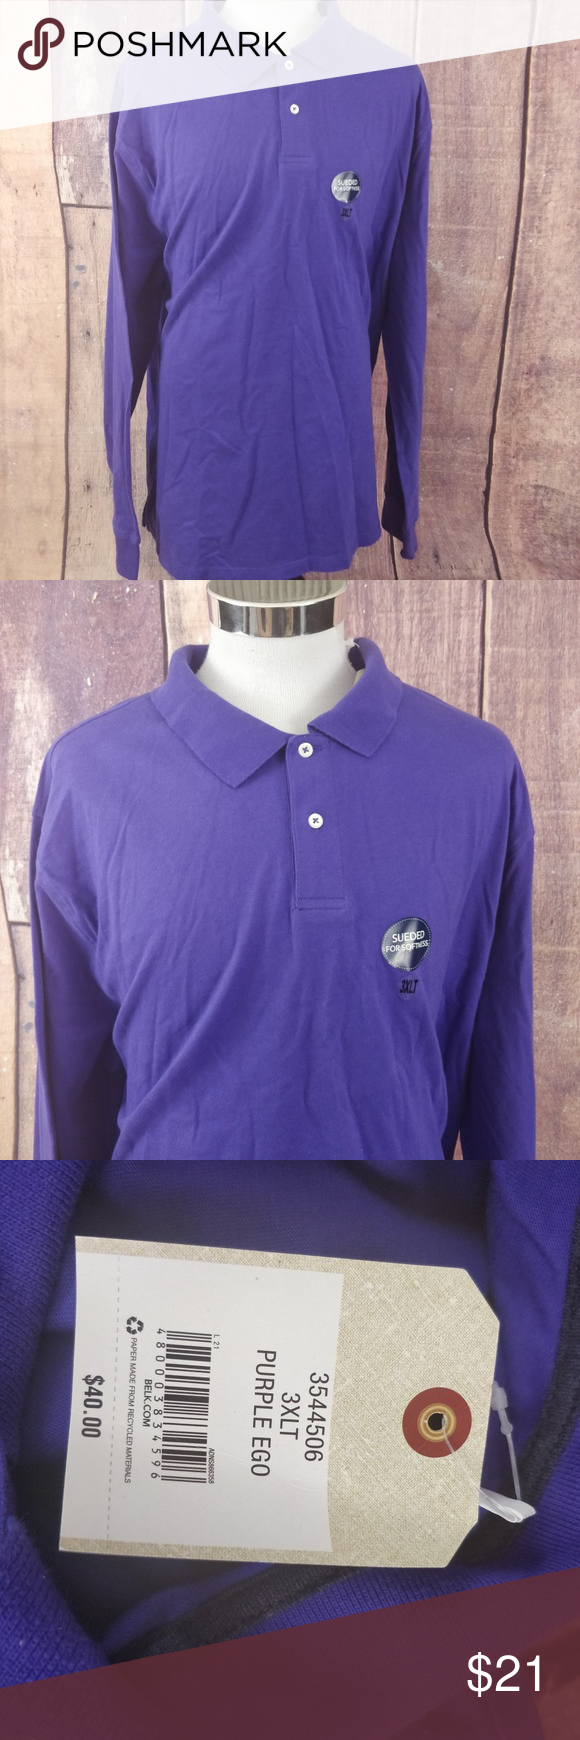 New Saddlebred Long Sleeve Polo Shirt Mens 3xlt Nwt In 2018 My